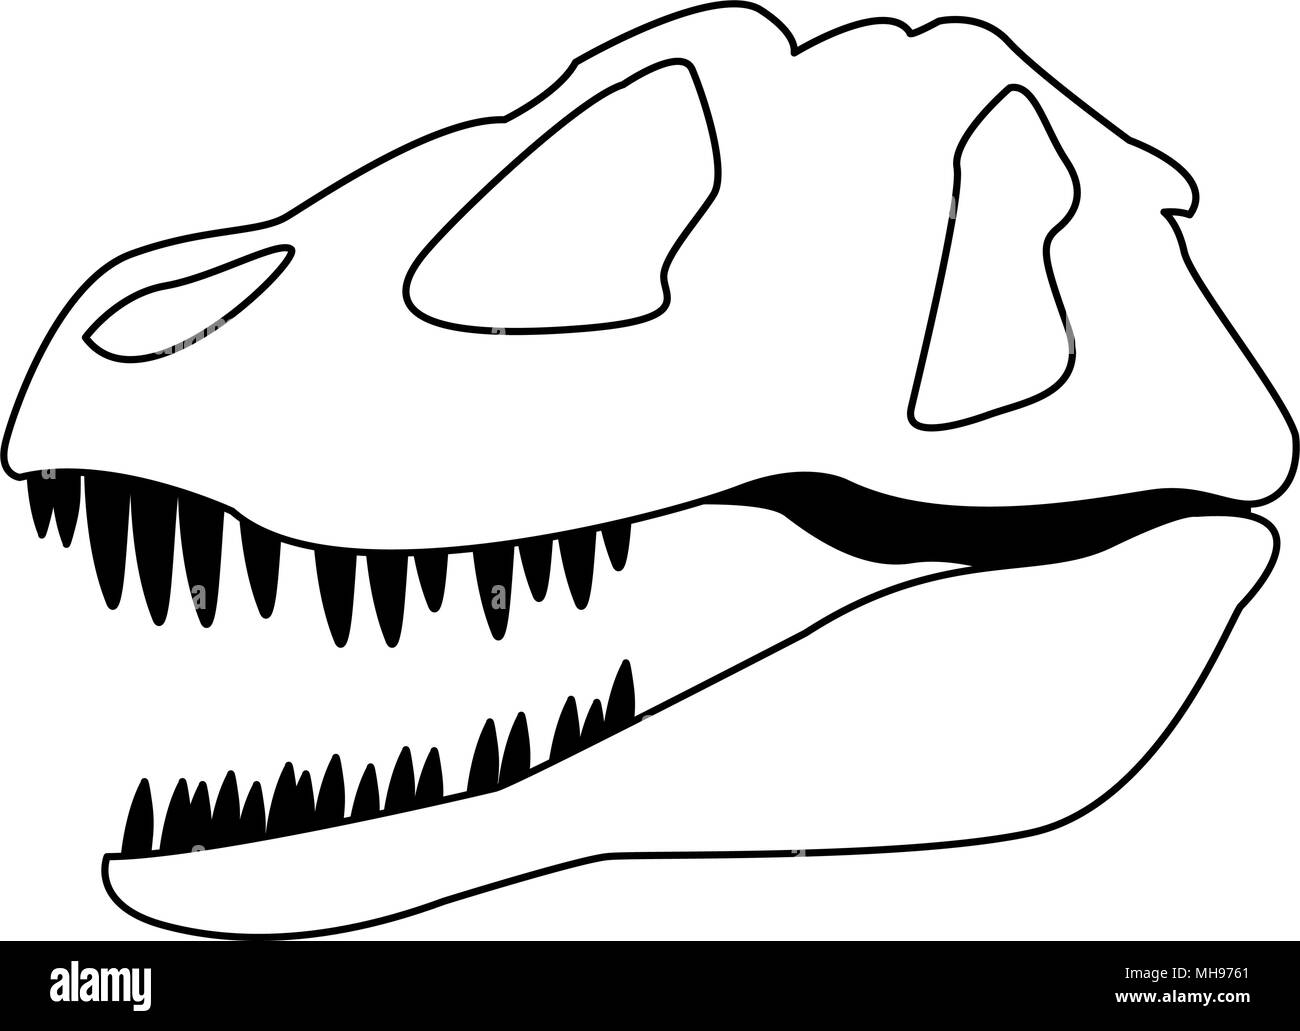 Dinosaur skull isolated on black and white colors - Stock Image